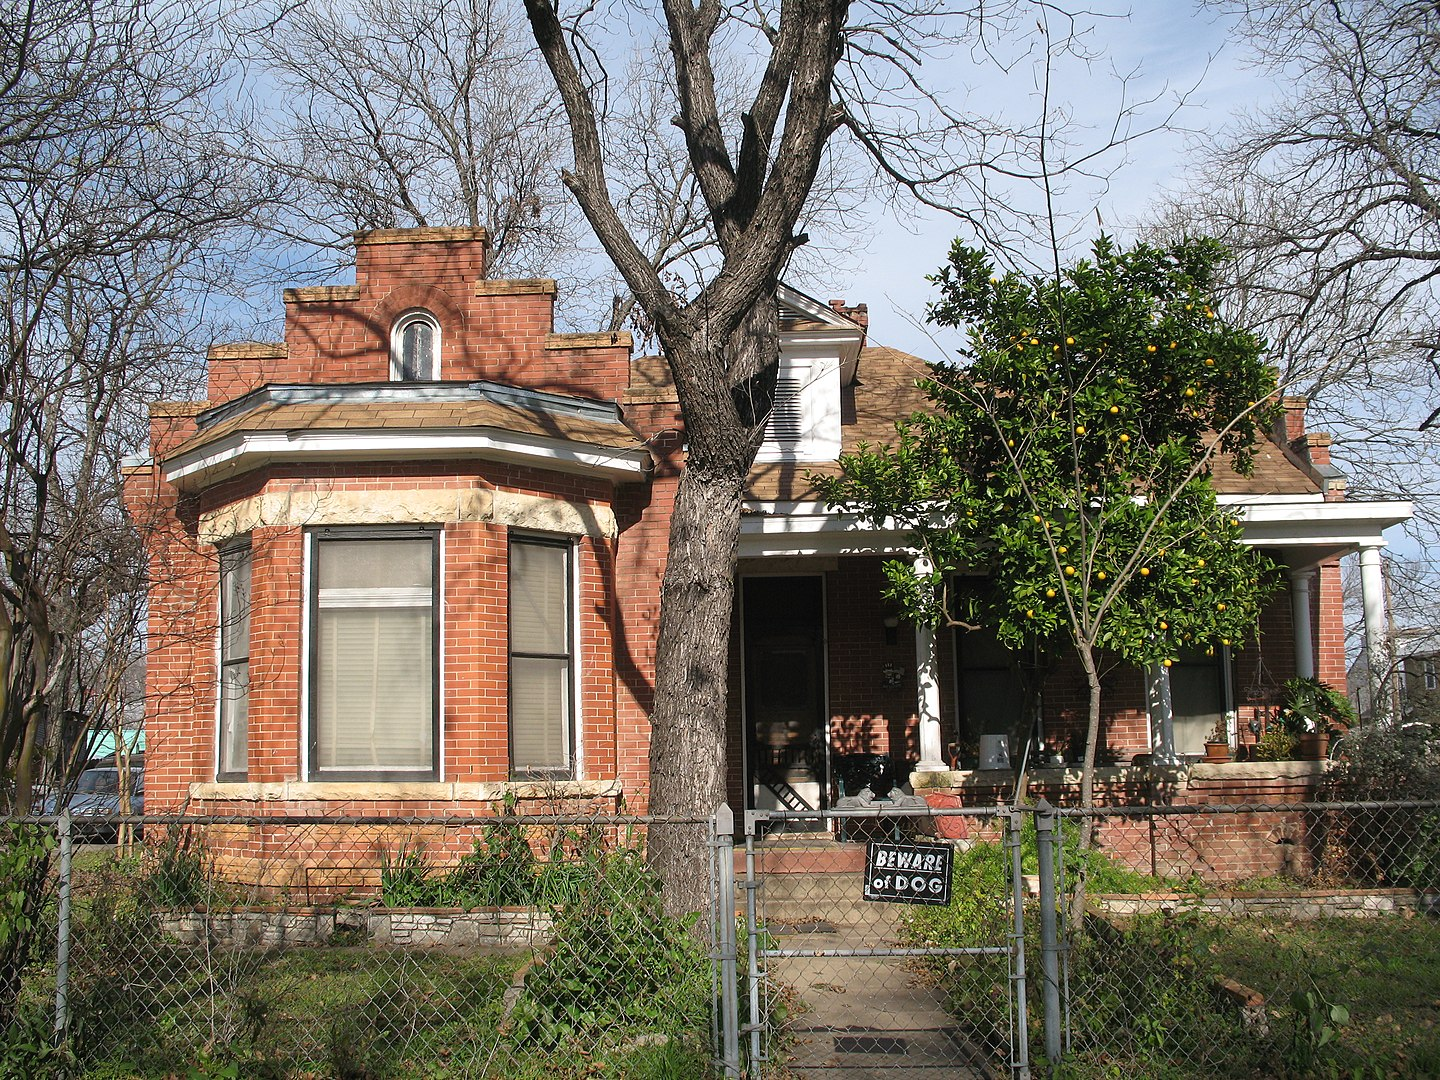 2009 Photo of the Joseph O. Polhemus House